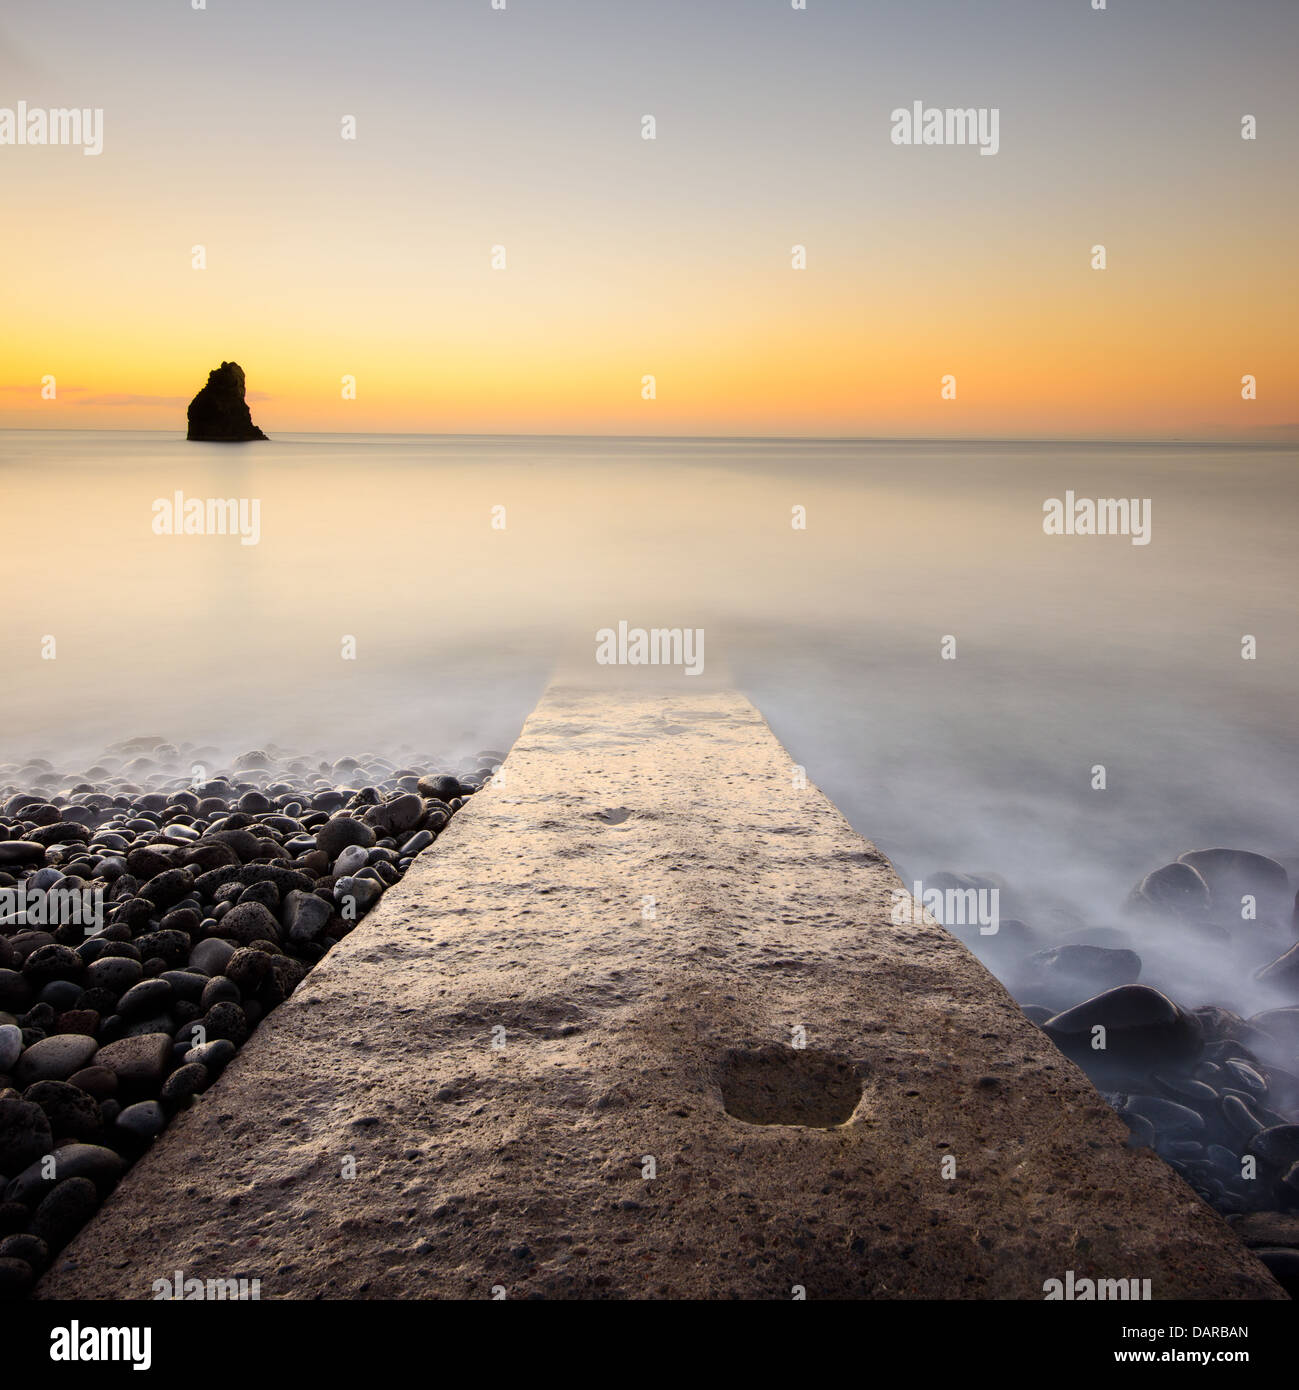 Jetty and misty seascape, Funchal, Madeira, Portugal - Stock Image